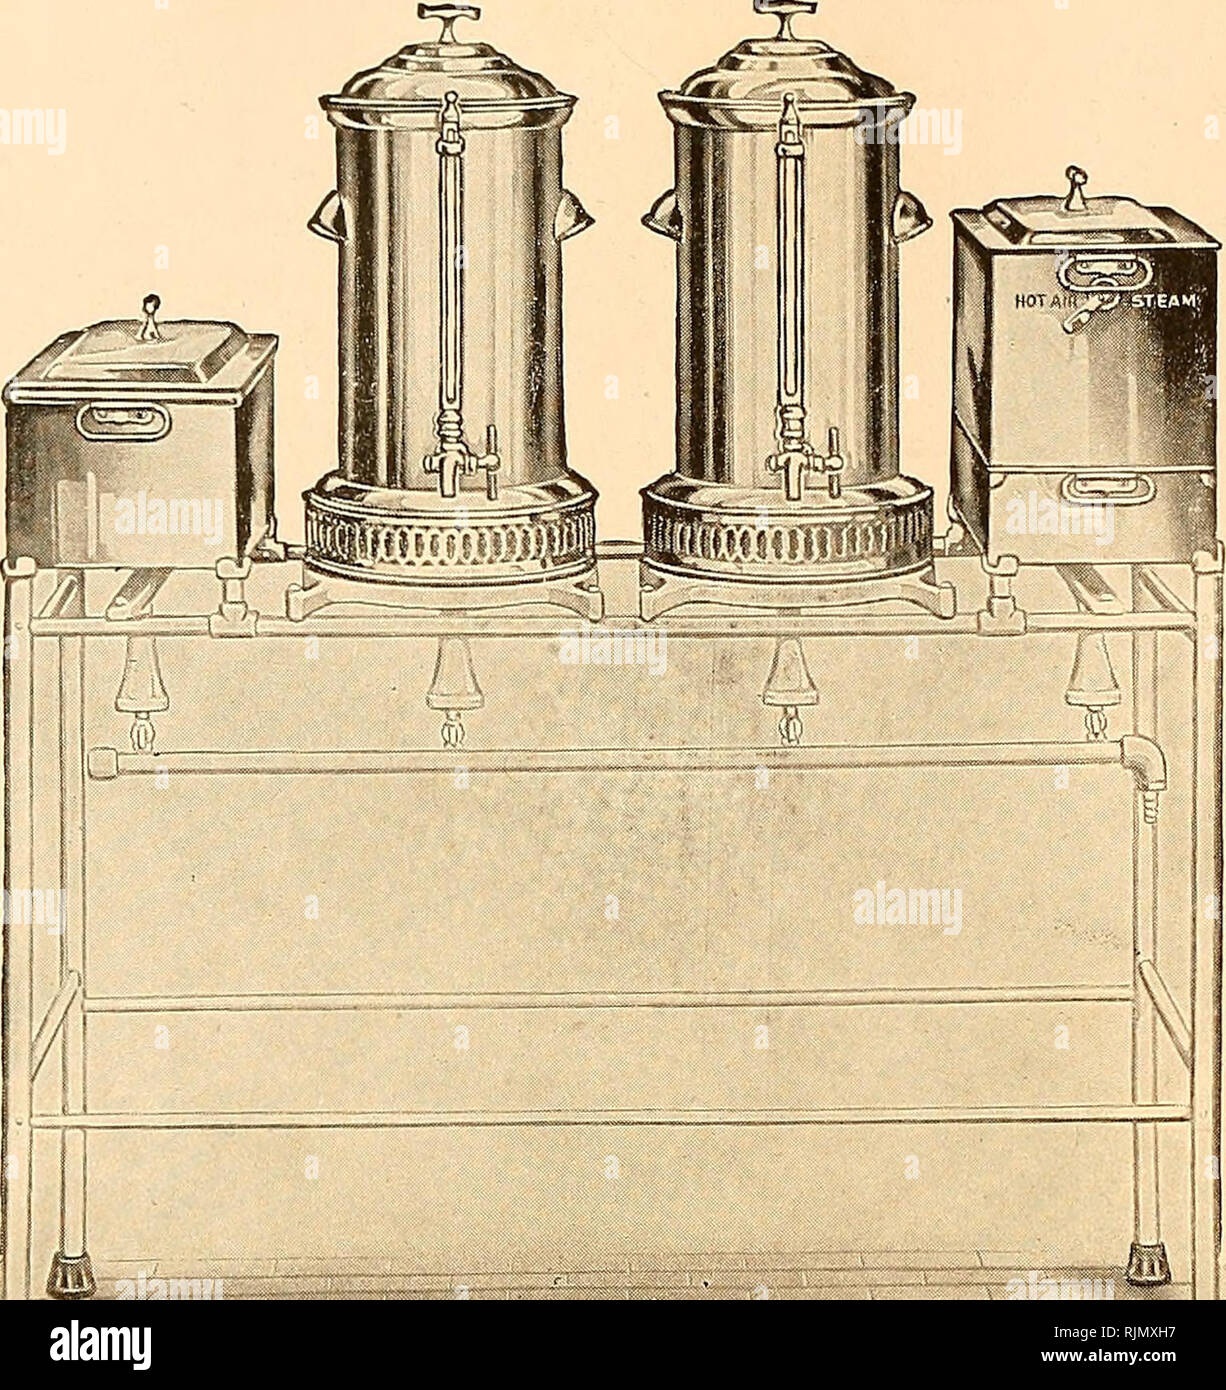 . Bacteriological apparatus : pathological, biochemical. Scientific apparatus and instruments; Bacteriology; Chemical industry. GHfiH ®i)f Mill (Enrpnrattnrt, 3Rnrrn>0ij»r, N.. 17245 17245 Sterilizers—Complete Apparatus for Dressings and Instruments and for Supplying Hot and Cold Sterile Water. Sterilizers are of heavy cold- rolled copper, nickeled-plated on outside and coated with pure block tin on inside; water sterilizers have protected water gauge and three- way draw-off faucet; stands are tubular steel, finished in polished white enamel; supplies hot and cold sterile water and steriliz - Stock Image